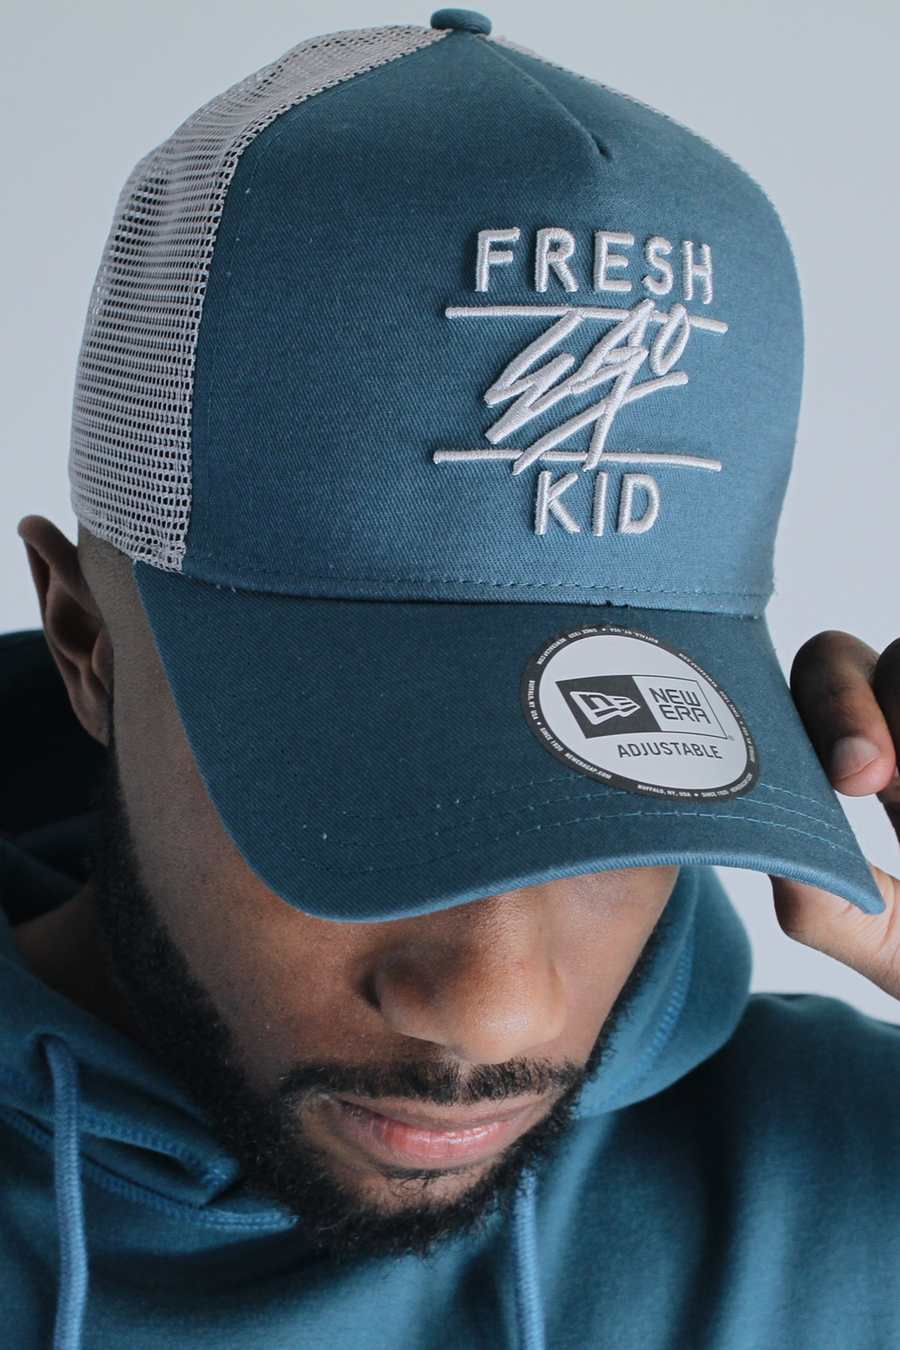 Fresh Ego Kid New Era Mesh Trucker Cap - Teal/Grey